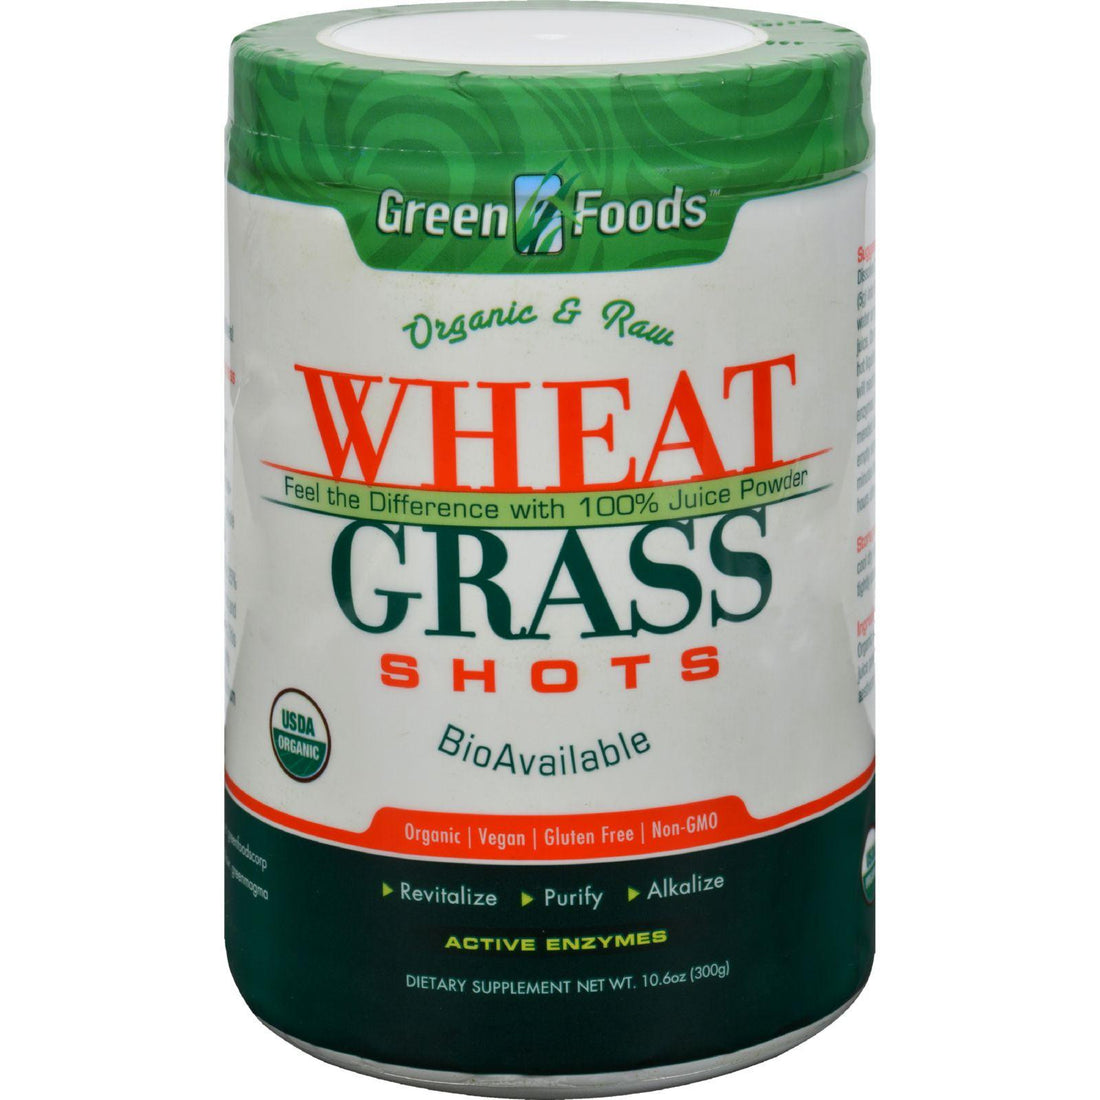 Mother Mantis: Green Foods Organic And Raw Wheat Grass Shots - 10.6 Oz Green Foods